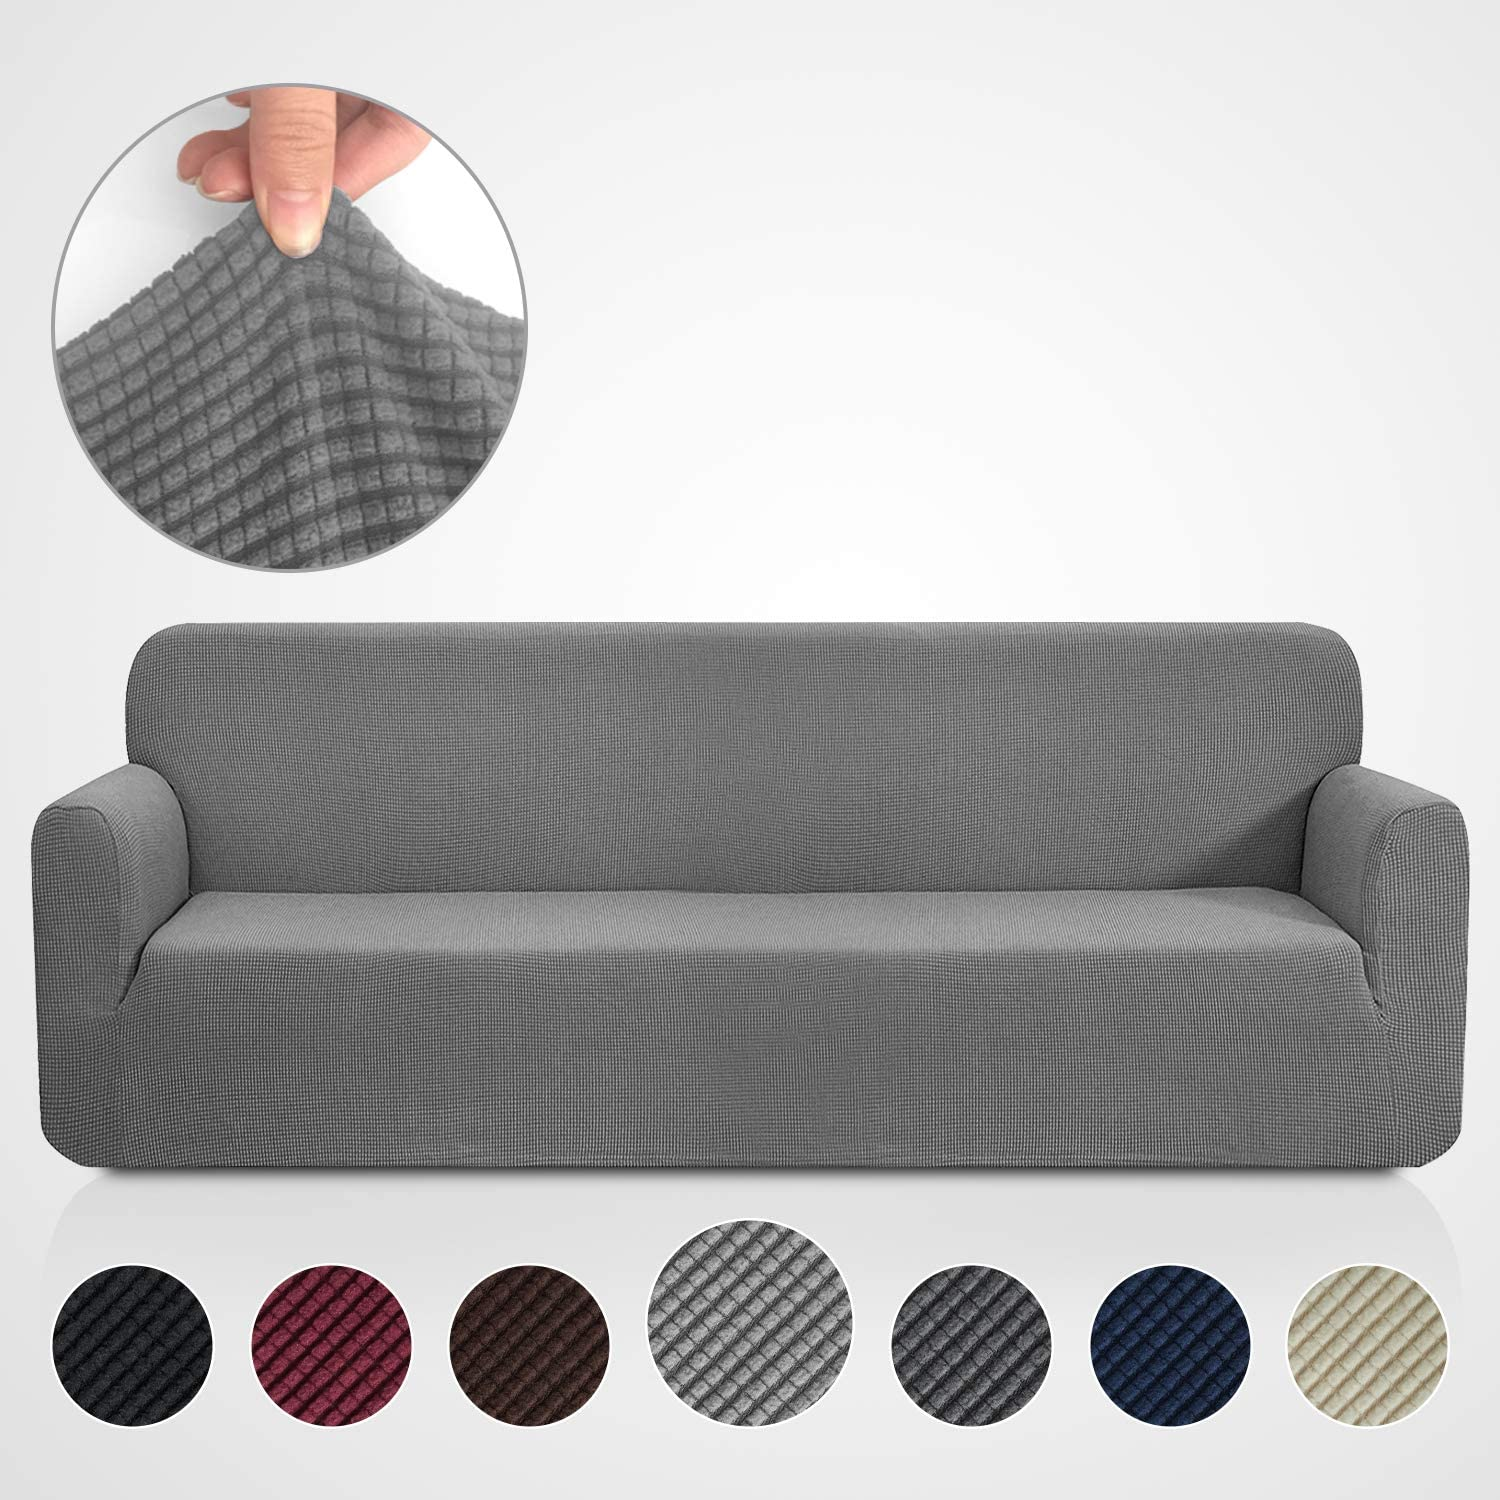 Rose Home Fashion RHF Jacquard-Stretch Sofa Cover, Slipcover for Leather Couch-Polyester Spandex Sofa Slipcover&Couch Cover for Dogs, 1-Piece Sofa Protector(Extra-Wide Sofa: Gray)